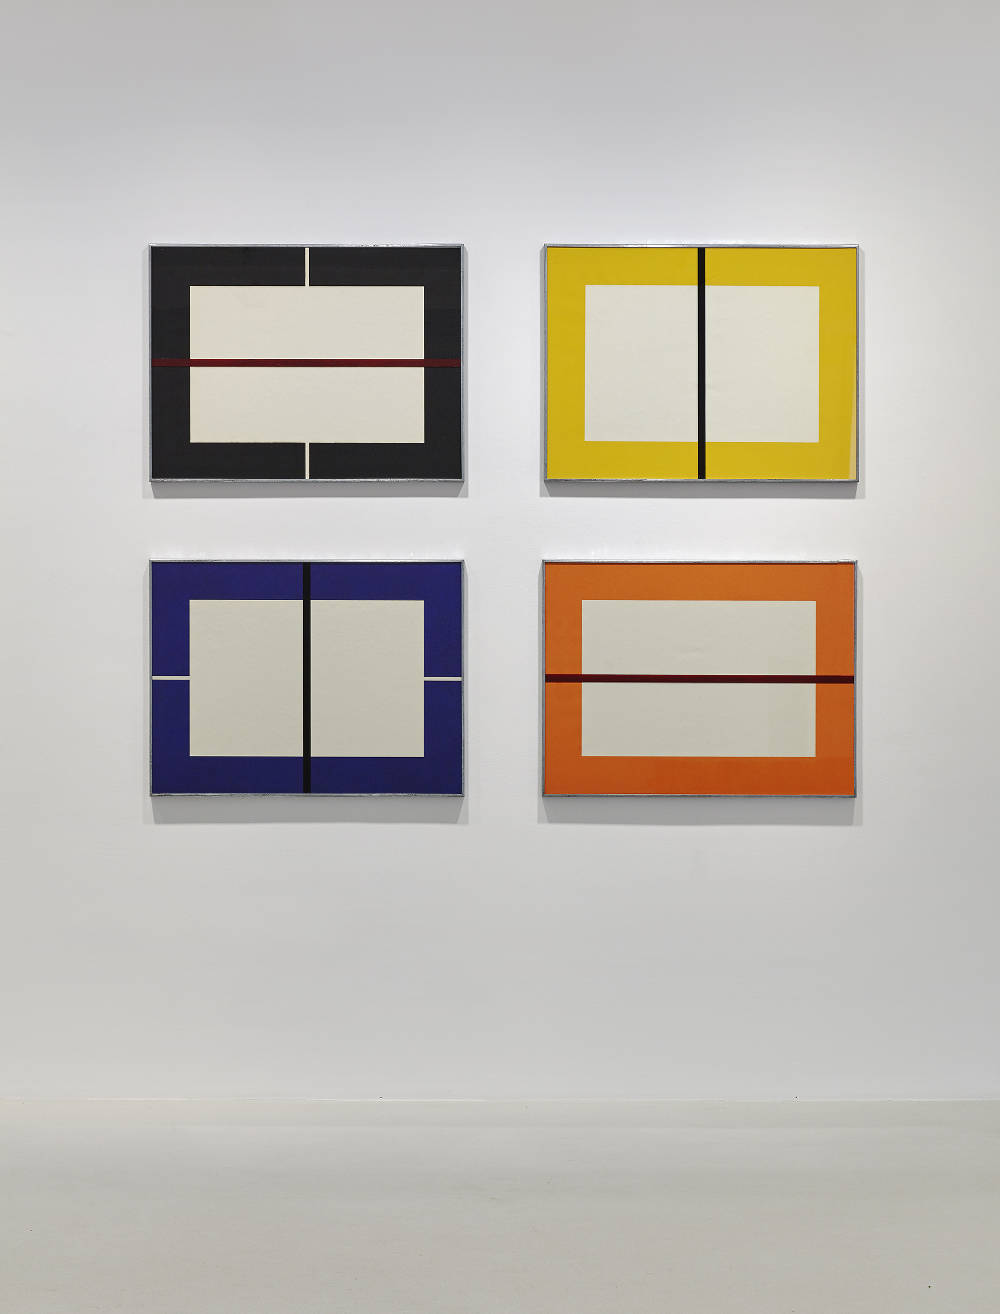 Donald Judd, Untitled, 1993. Set of four woodcuts printed in black, orange, yellow and ultramarine blue and with an oil paint stripe on the class of each galvanized iron frame. Japanese paper 60 x 80 cm (23,62 x 31,5 in) Photos: Thomas Lannes. Courtesy Galerie Thaddaeus Ropac, London · Paris · Salzburg © Judd Foundation / Adagp, Paris, 2019